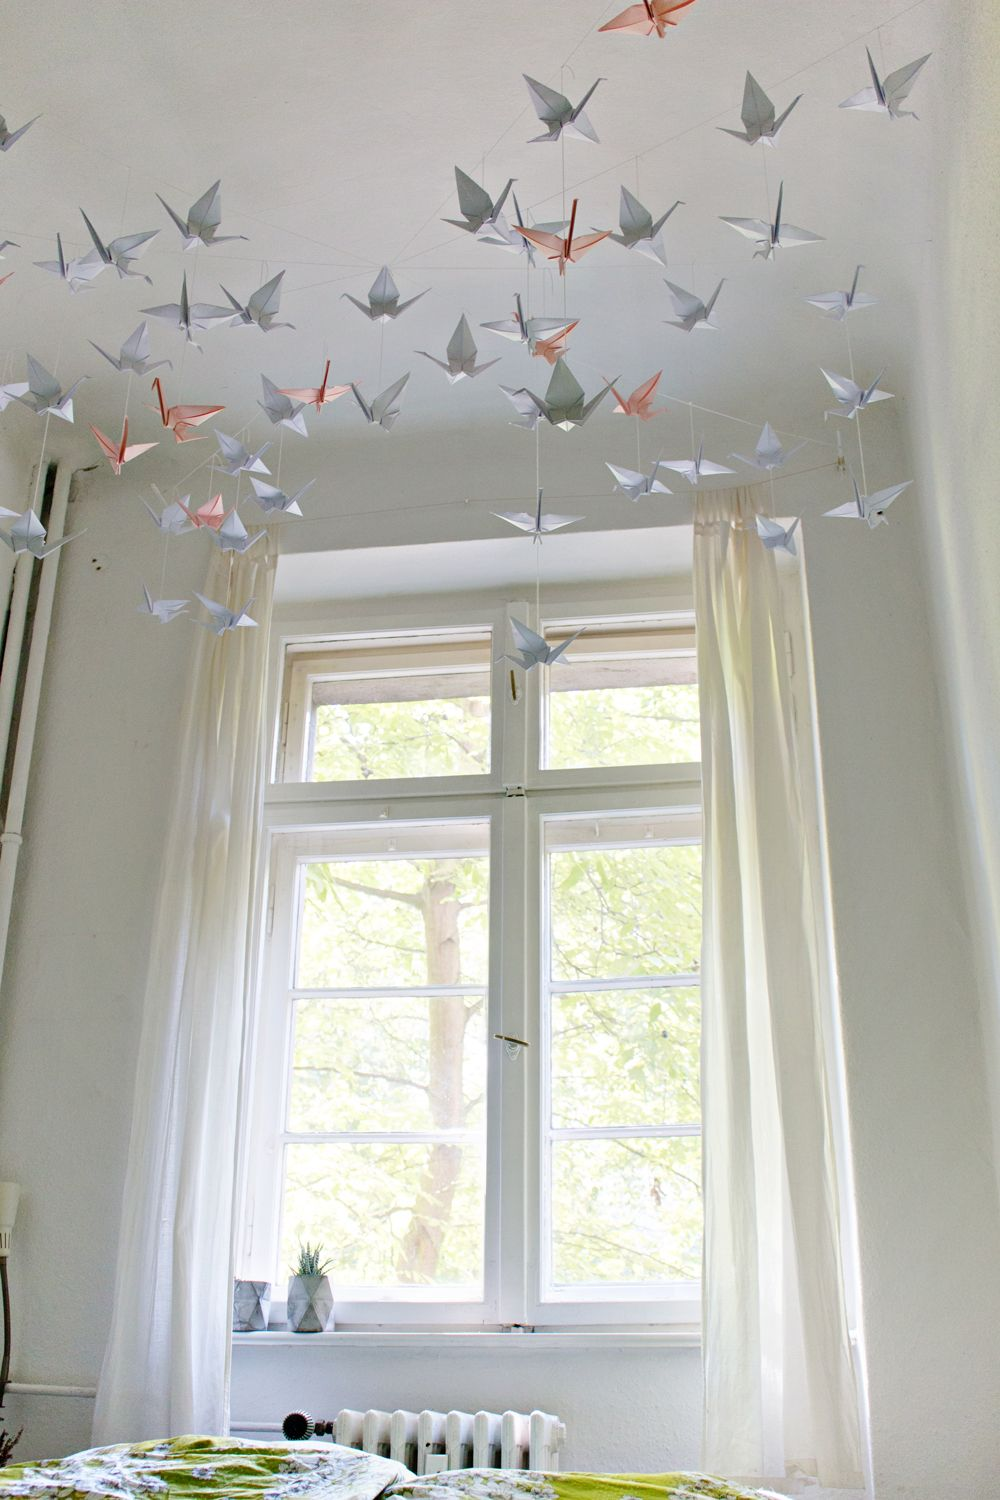 27 Amazing Photo Of Origami Decoration Diy Hang From Ceiling